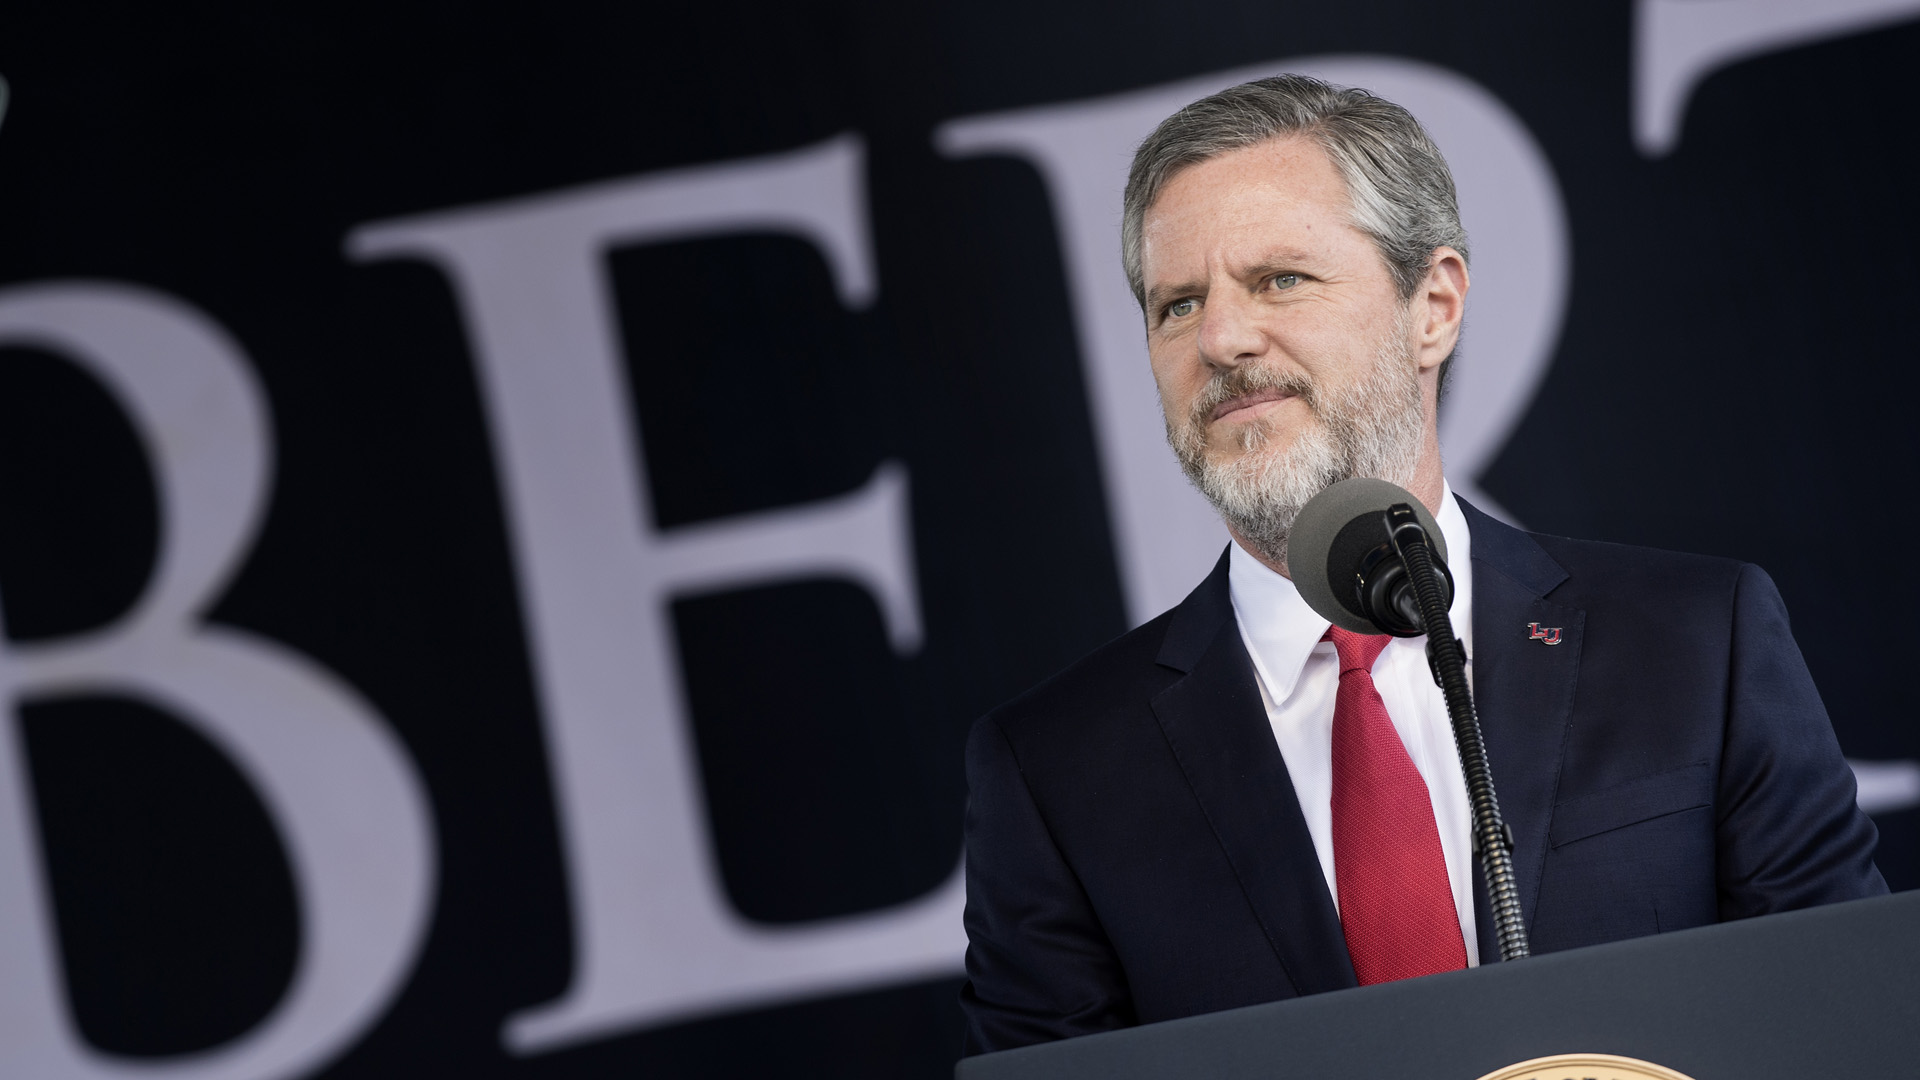 President of Liberty University Jerry Falwell, Jr. speaks during Liberty University's commencement ceremony May 13, 2017 in Lynchburg, Virginia. (Credit: BRENDAN SMIALOWSKI/AFP/Getty Images)